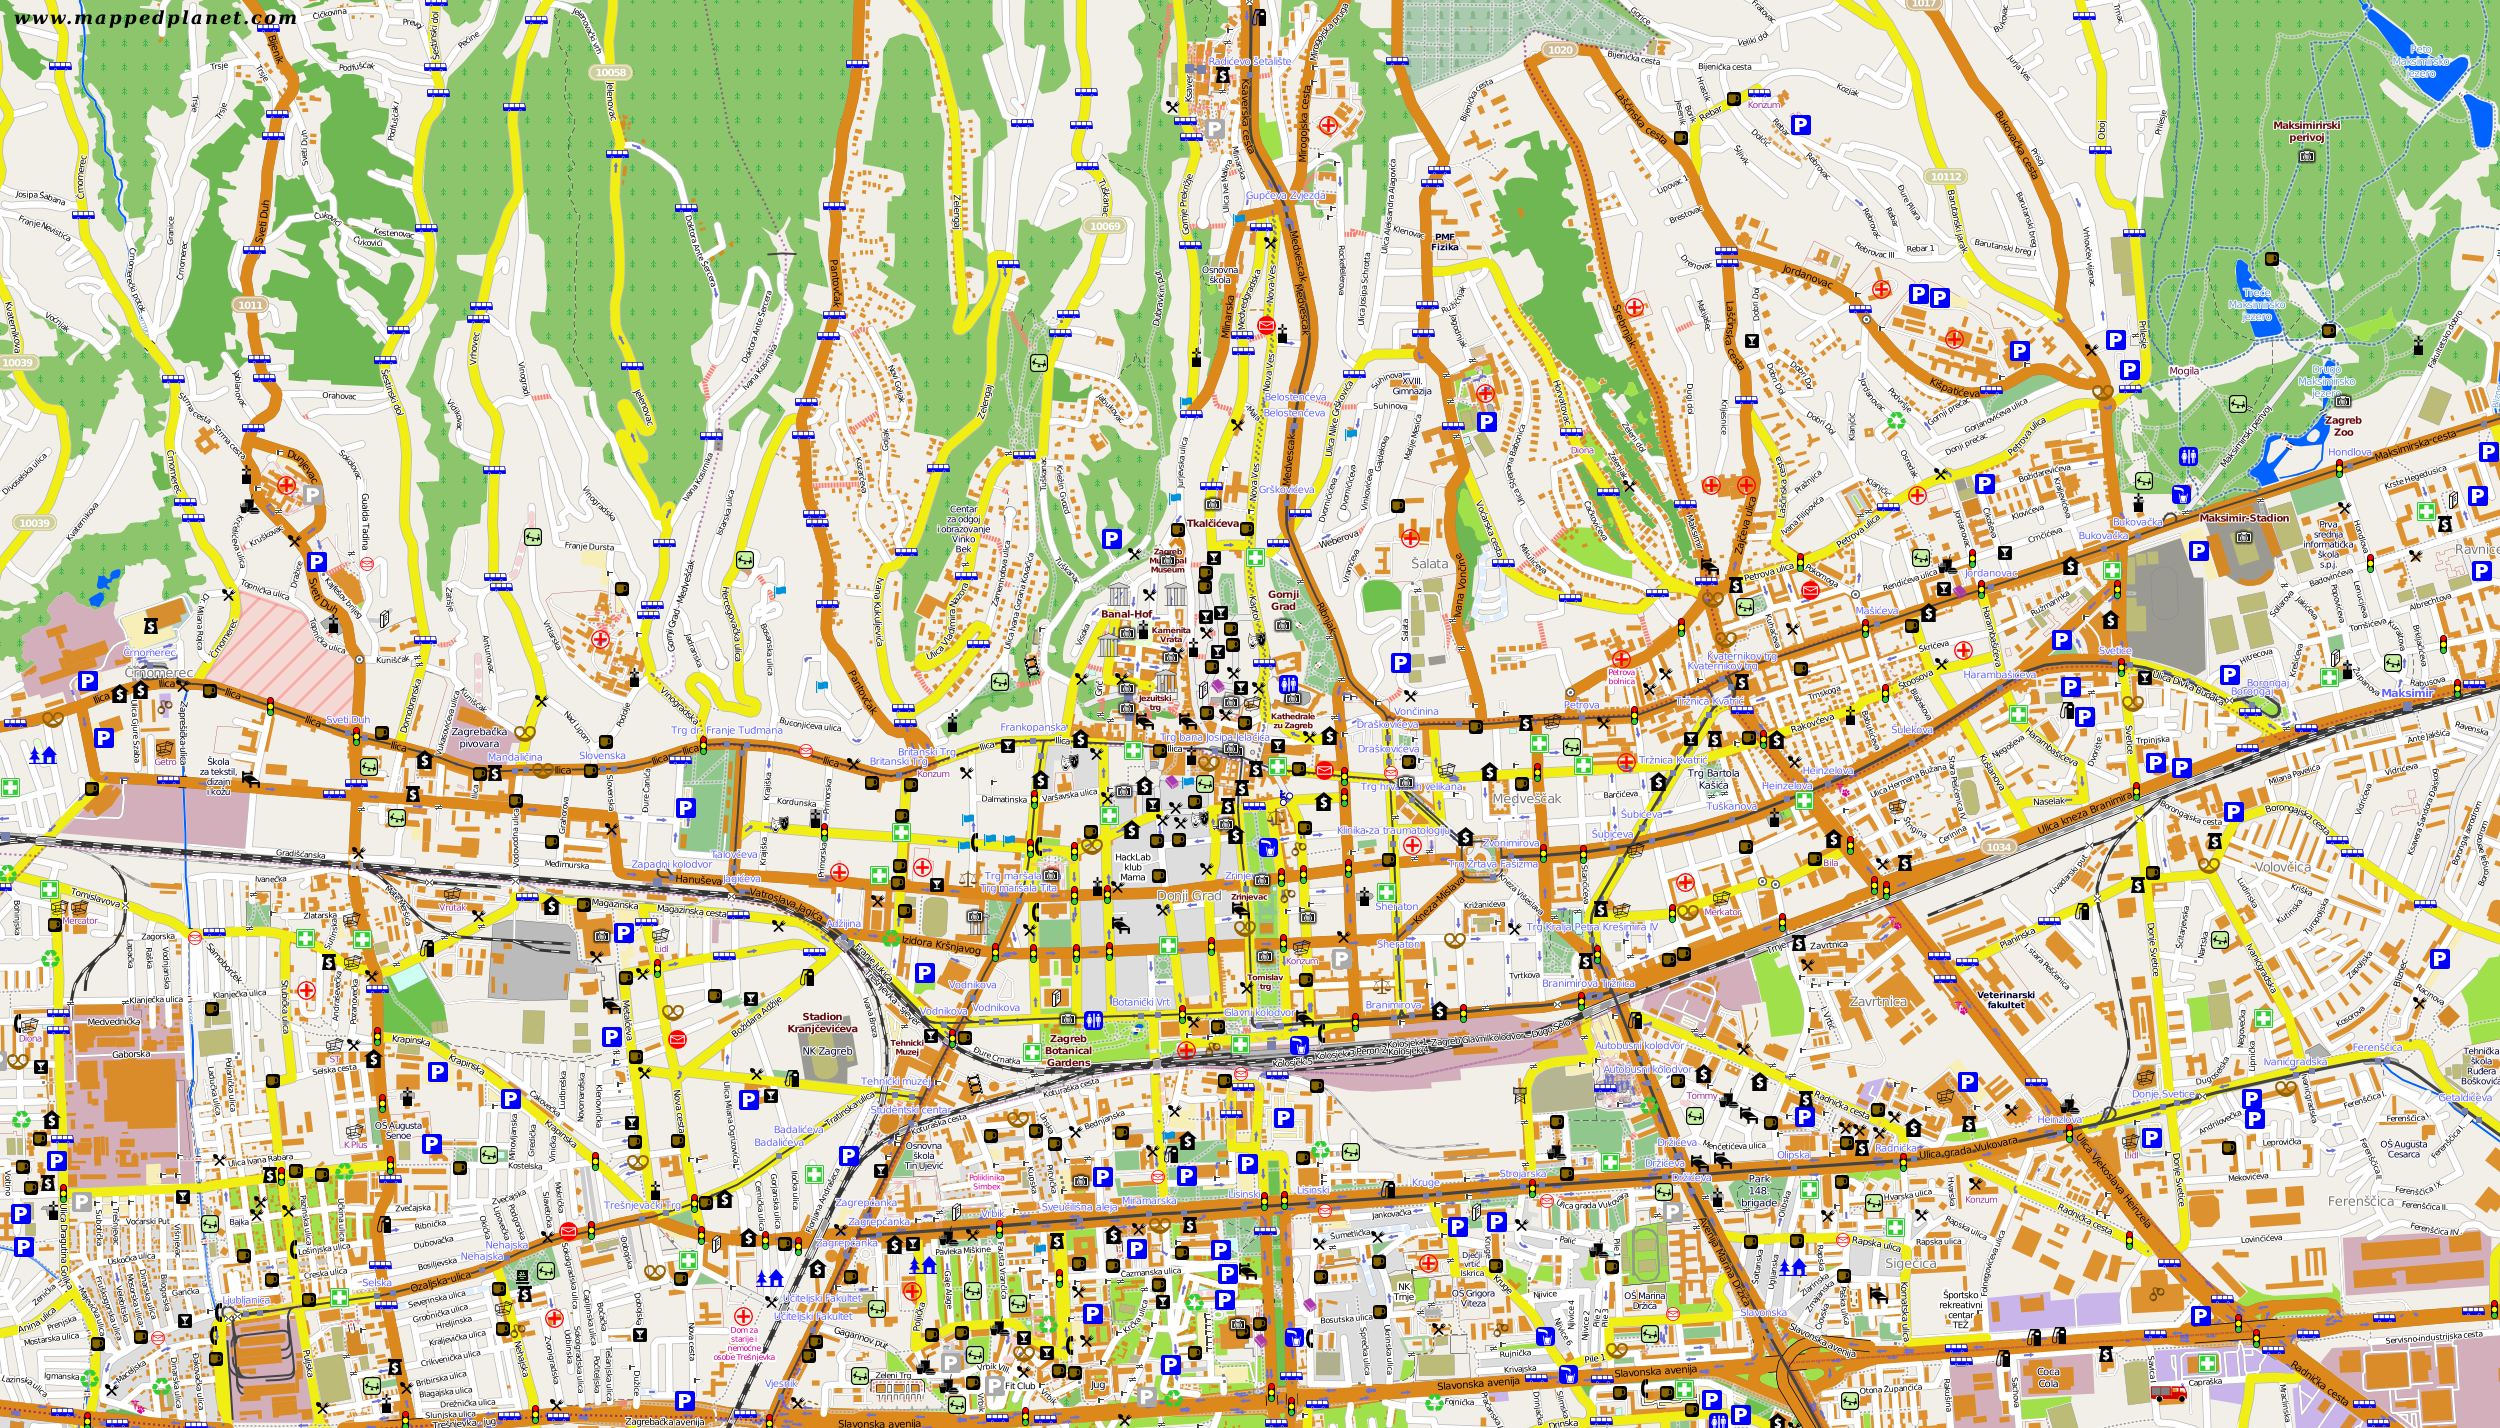 City maps Zagreb Zagreb City Map on rijeka city map, opatija city map, prizren city map, vukovar city map, treviso city map, cotonou city map, belgrade city map, film city map, geneva city map, zug city map, serbia city map, goteborg city map, perth city map, pretend city map, cluj city map, santiago city map, pula city map, alicante city map, port of spain city map, marbella city map,